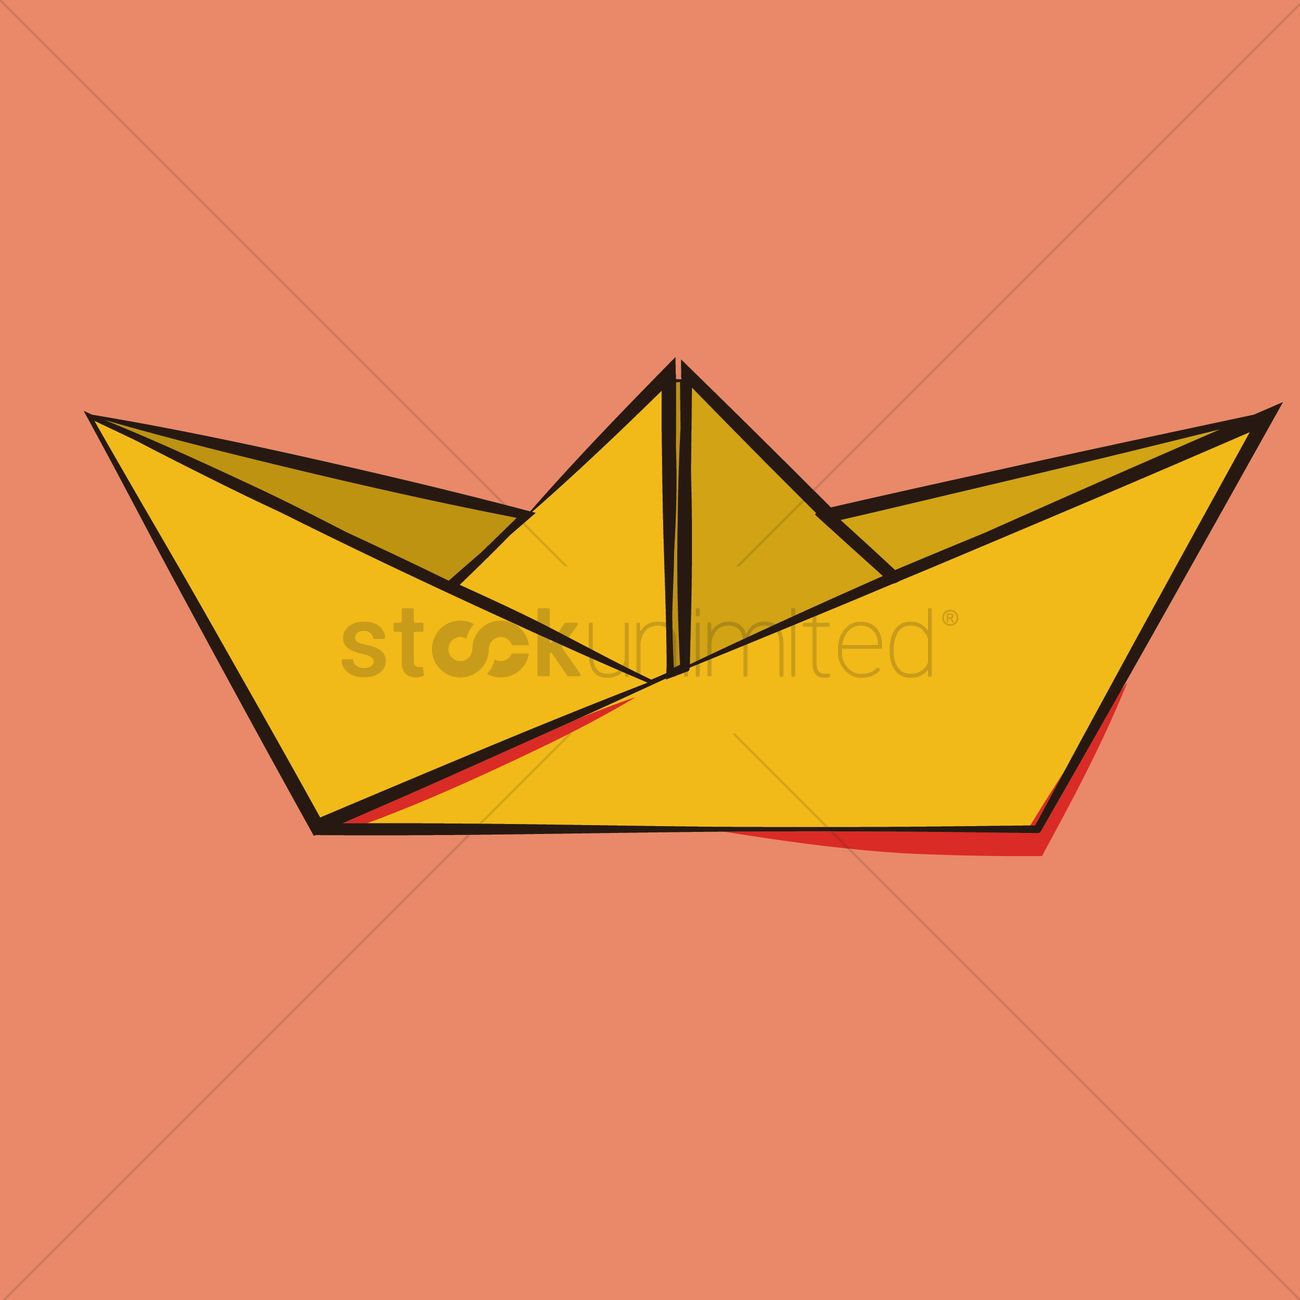 Origami Paper Boat Vector Image 1597629 Stockunlimited